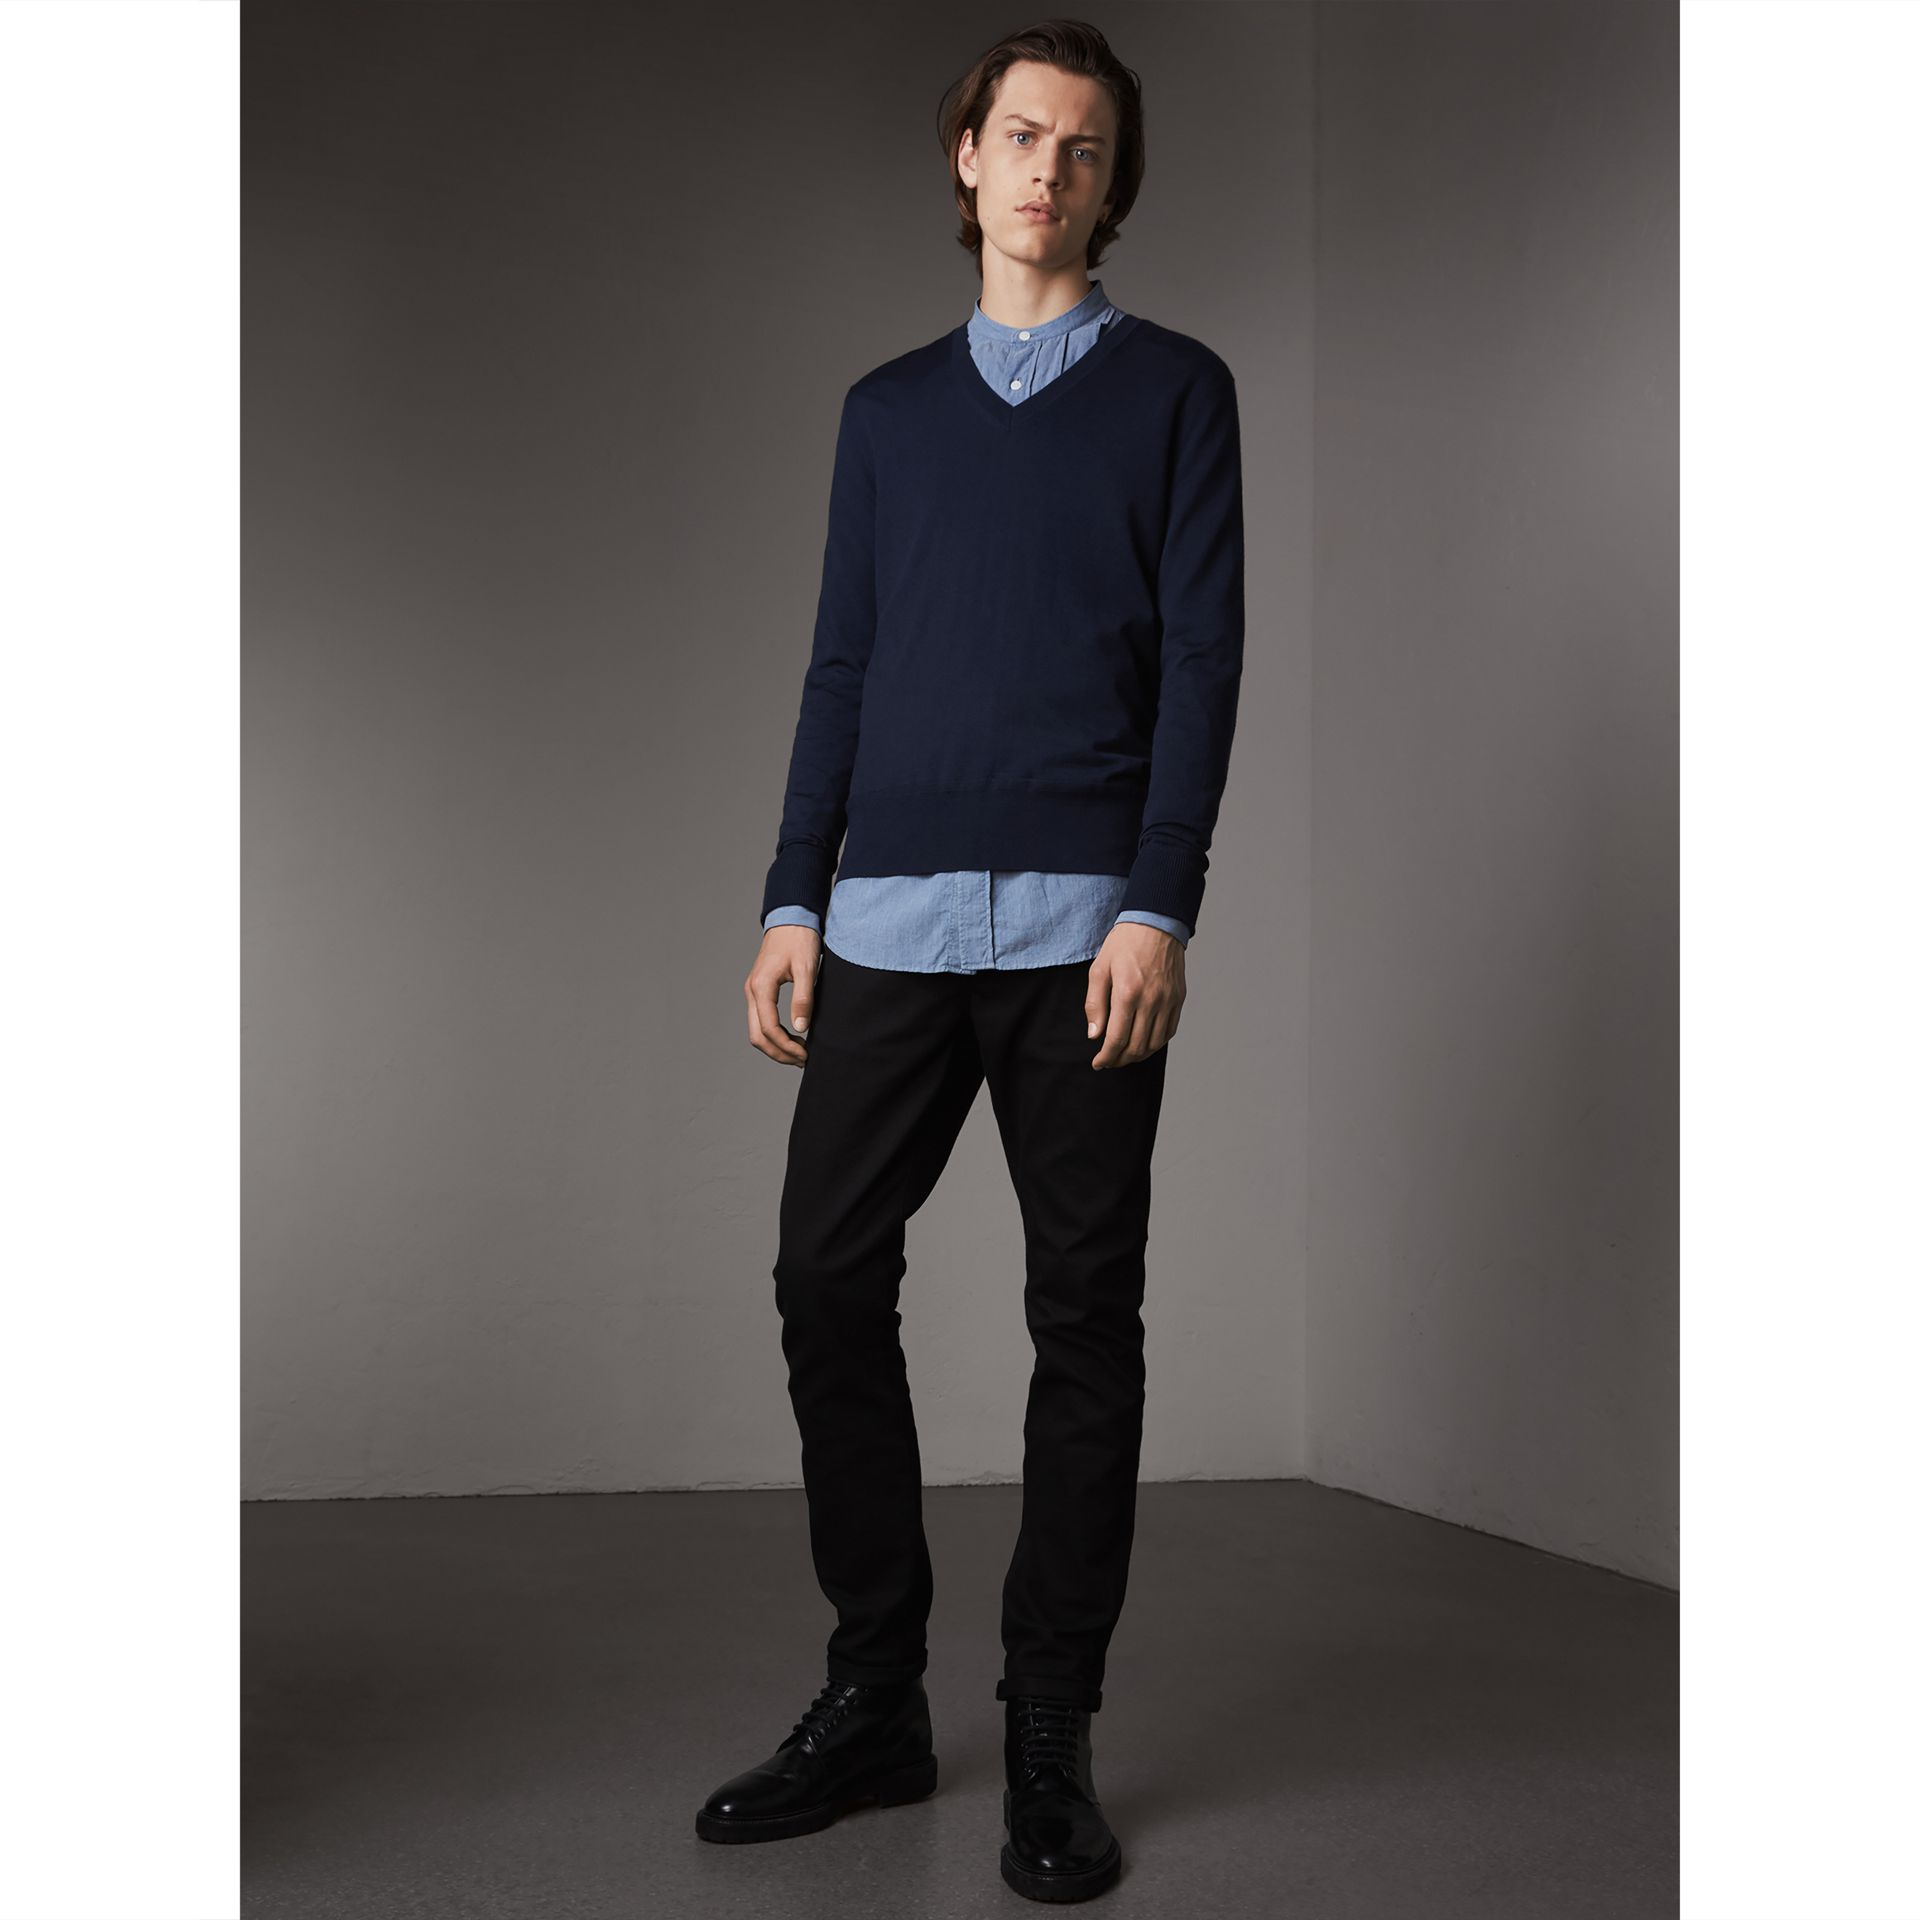 Merino Wool V-neck Sweater in Navy - Men | Burberry - gallery image 1